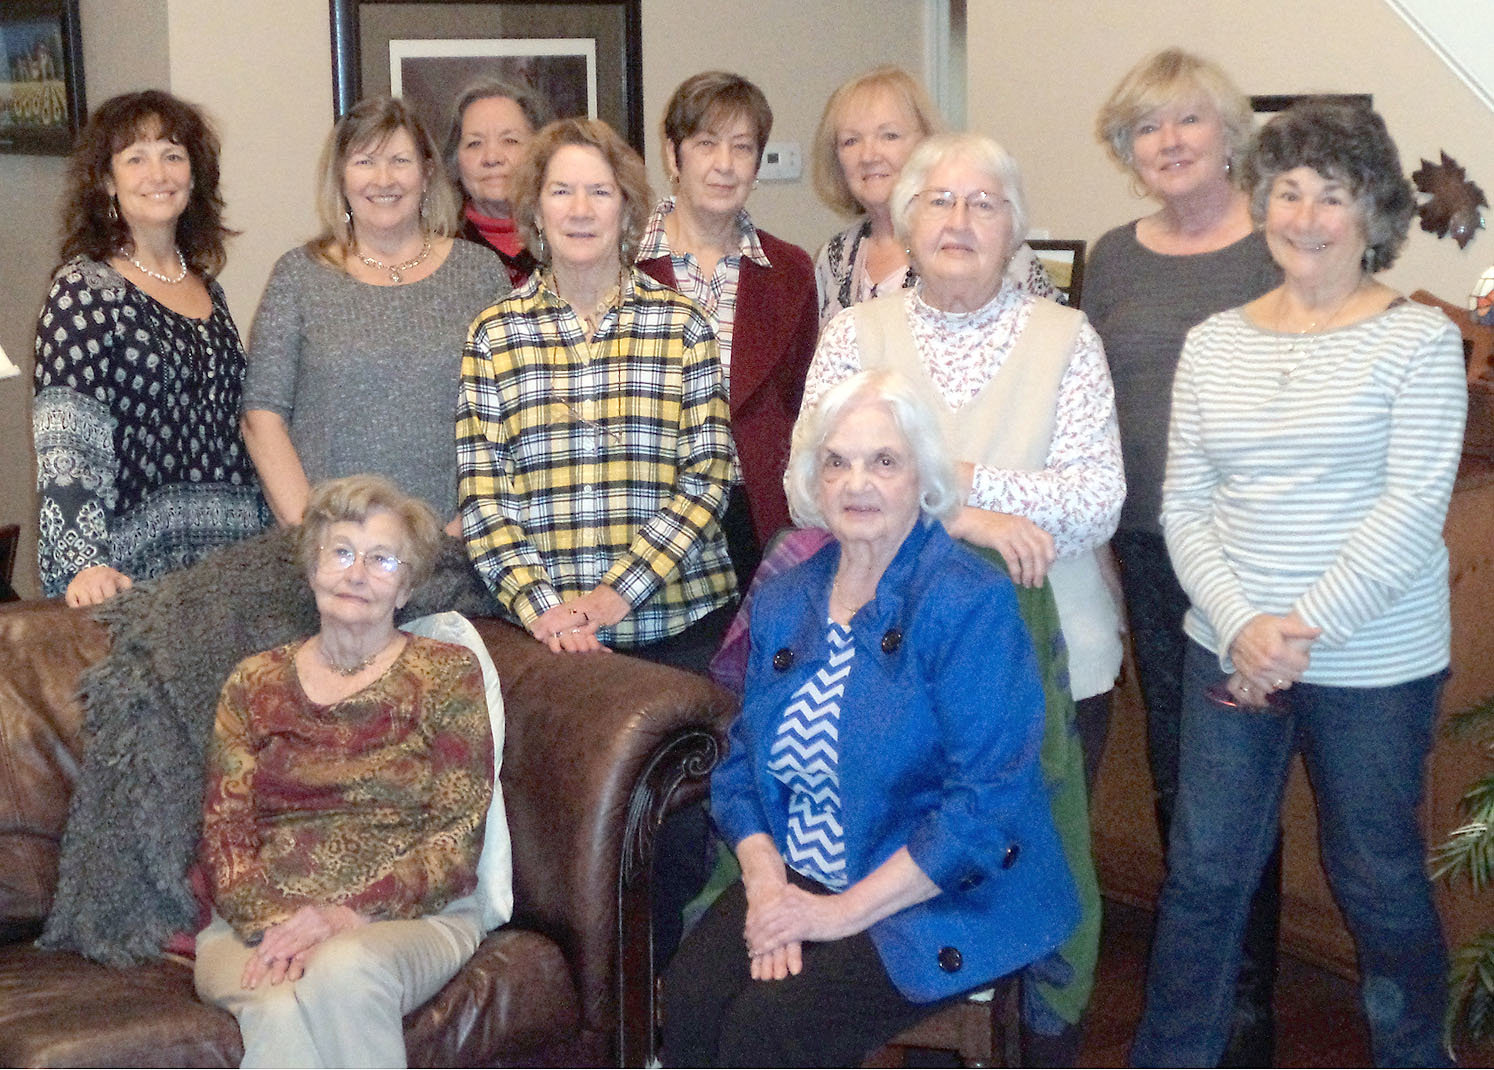 THE WOMEN of the Magnolia Garden Club pose for a photo at their January meeting as they discuss their upcoming Day of Gardening, Feb. 23. They also learned how to make soap from plants. Standing, from left, are Brenda Nakdimen, Sheila Webb, Fredricka Lawson, Beth Cunningham, Sue Taylor, Ginger Cloud, Patsy Bettis, Linda Cross and Bonnie Bain. Seated are Elsie Yates and Annette Stanbery.